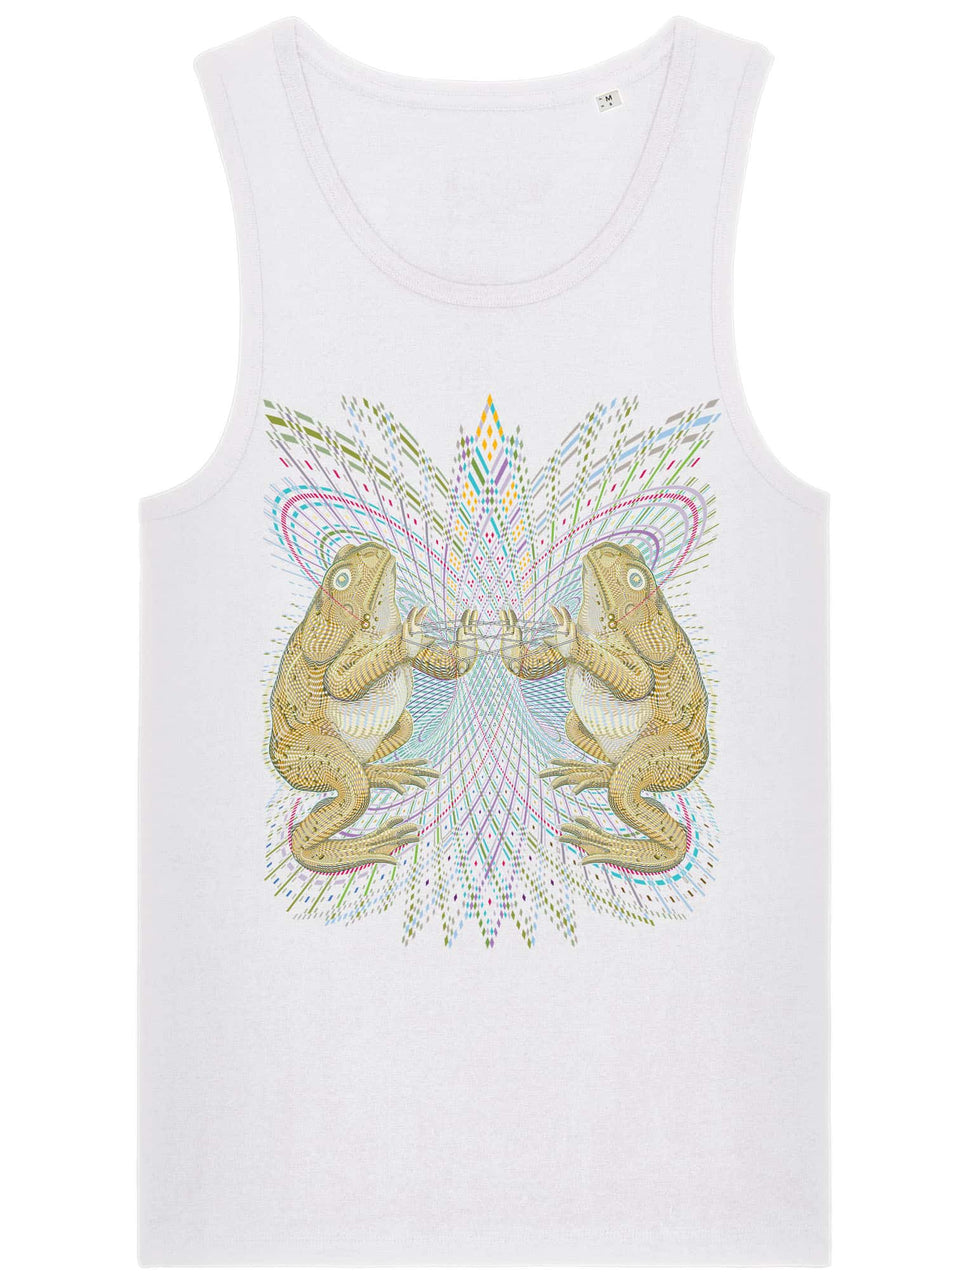 Bufo Alvarius Made To Order Men Tank Top - White